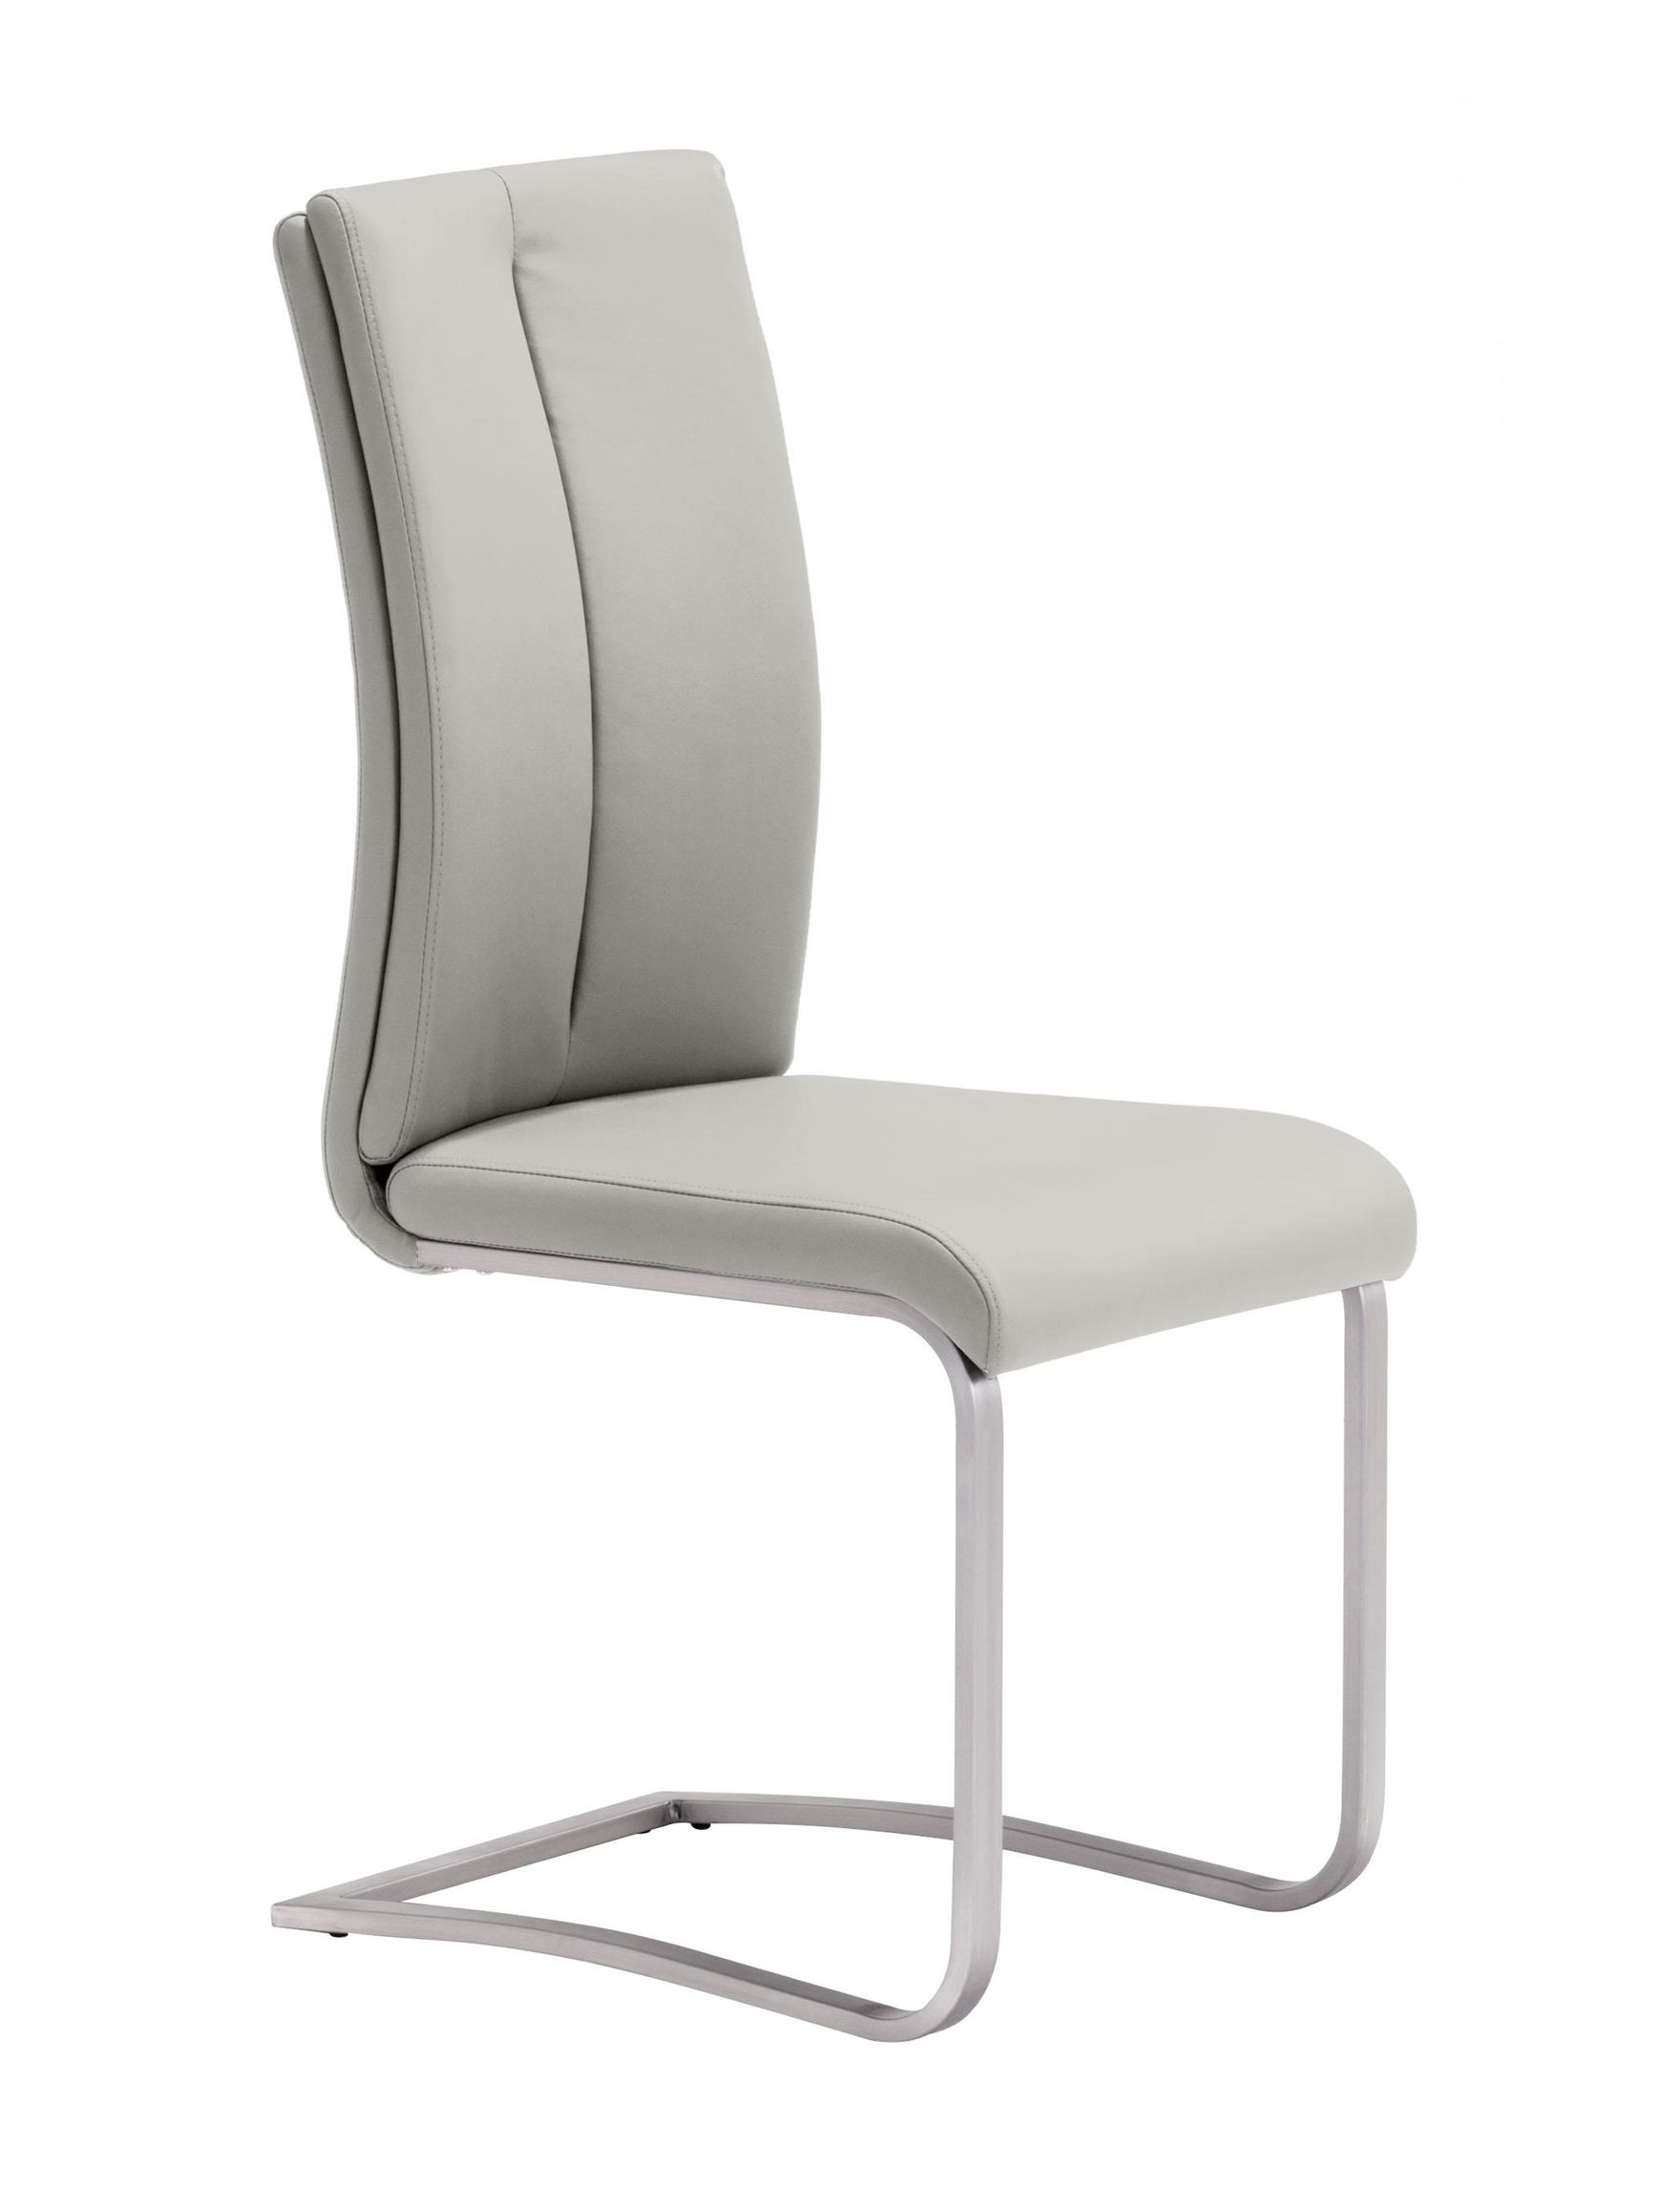 Zuo Modern Light Grey Dining Chairs Kitchen & Dining Furniture